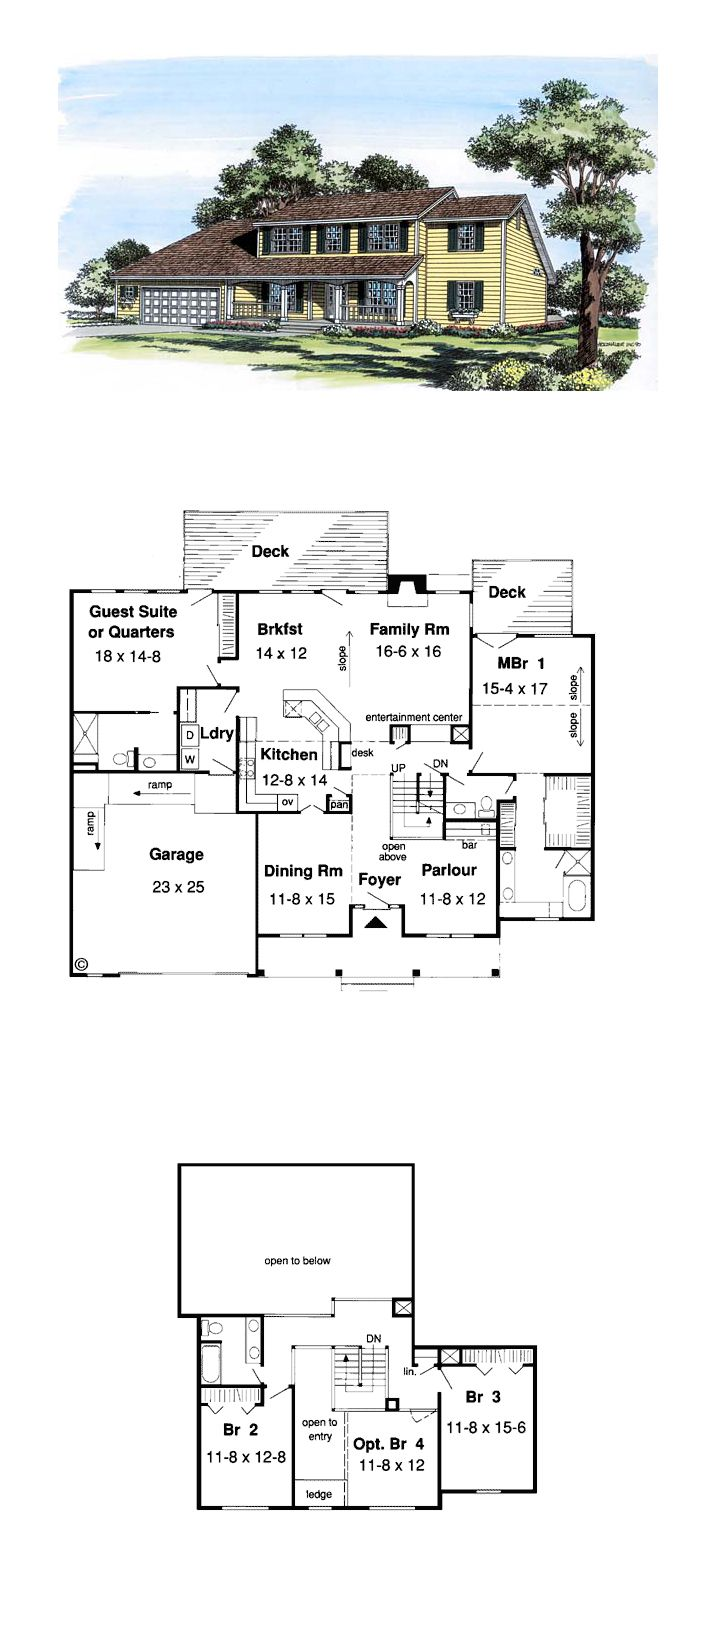 Saltbox Style House Plan 20404 With 5 Bed 4 Bath 2 Car Garage House Plans Two Story House Plans Saltbox Houses